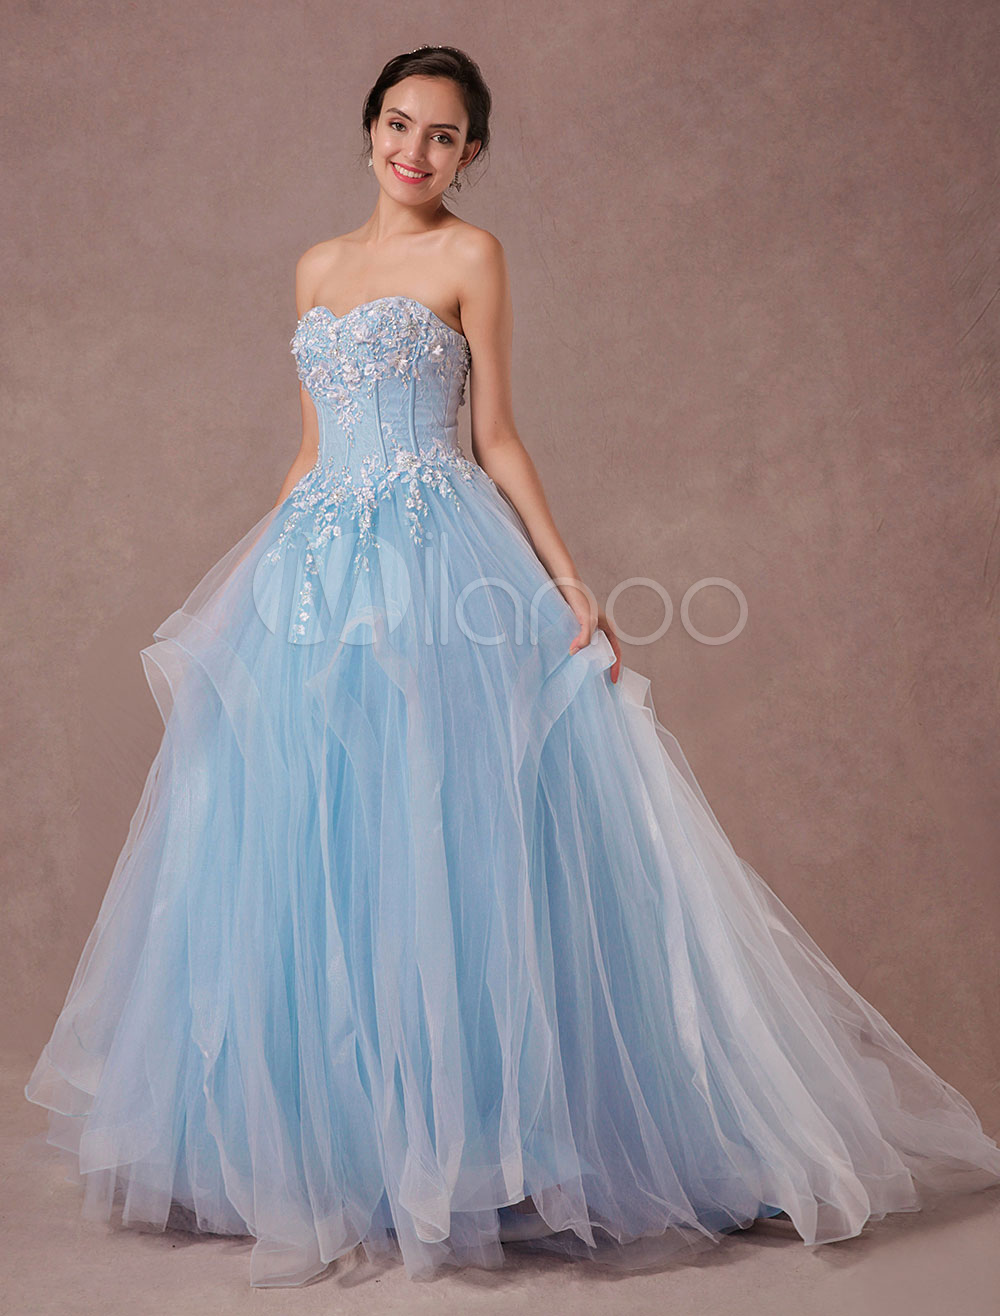 Blue Wedding Dress Lace Beading Tulle Bridal Gown Chapel Train Sweetheart Strapless Quinceanera Dress Luxury Backless Pageant Dress photo